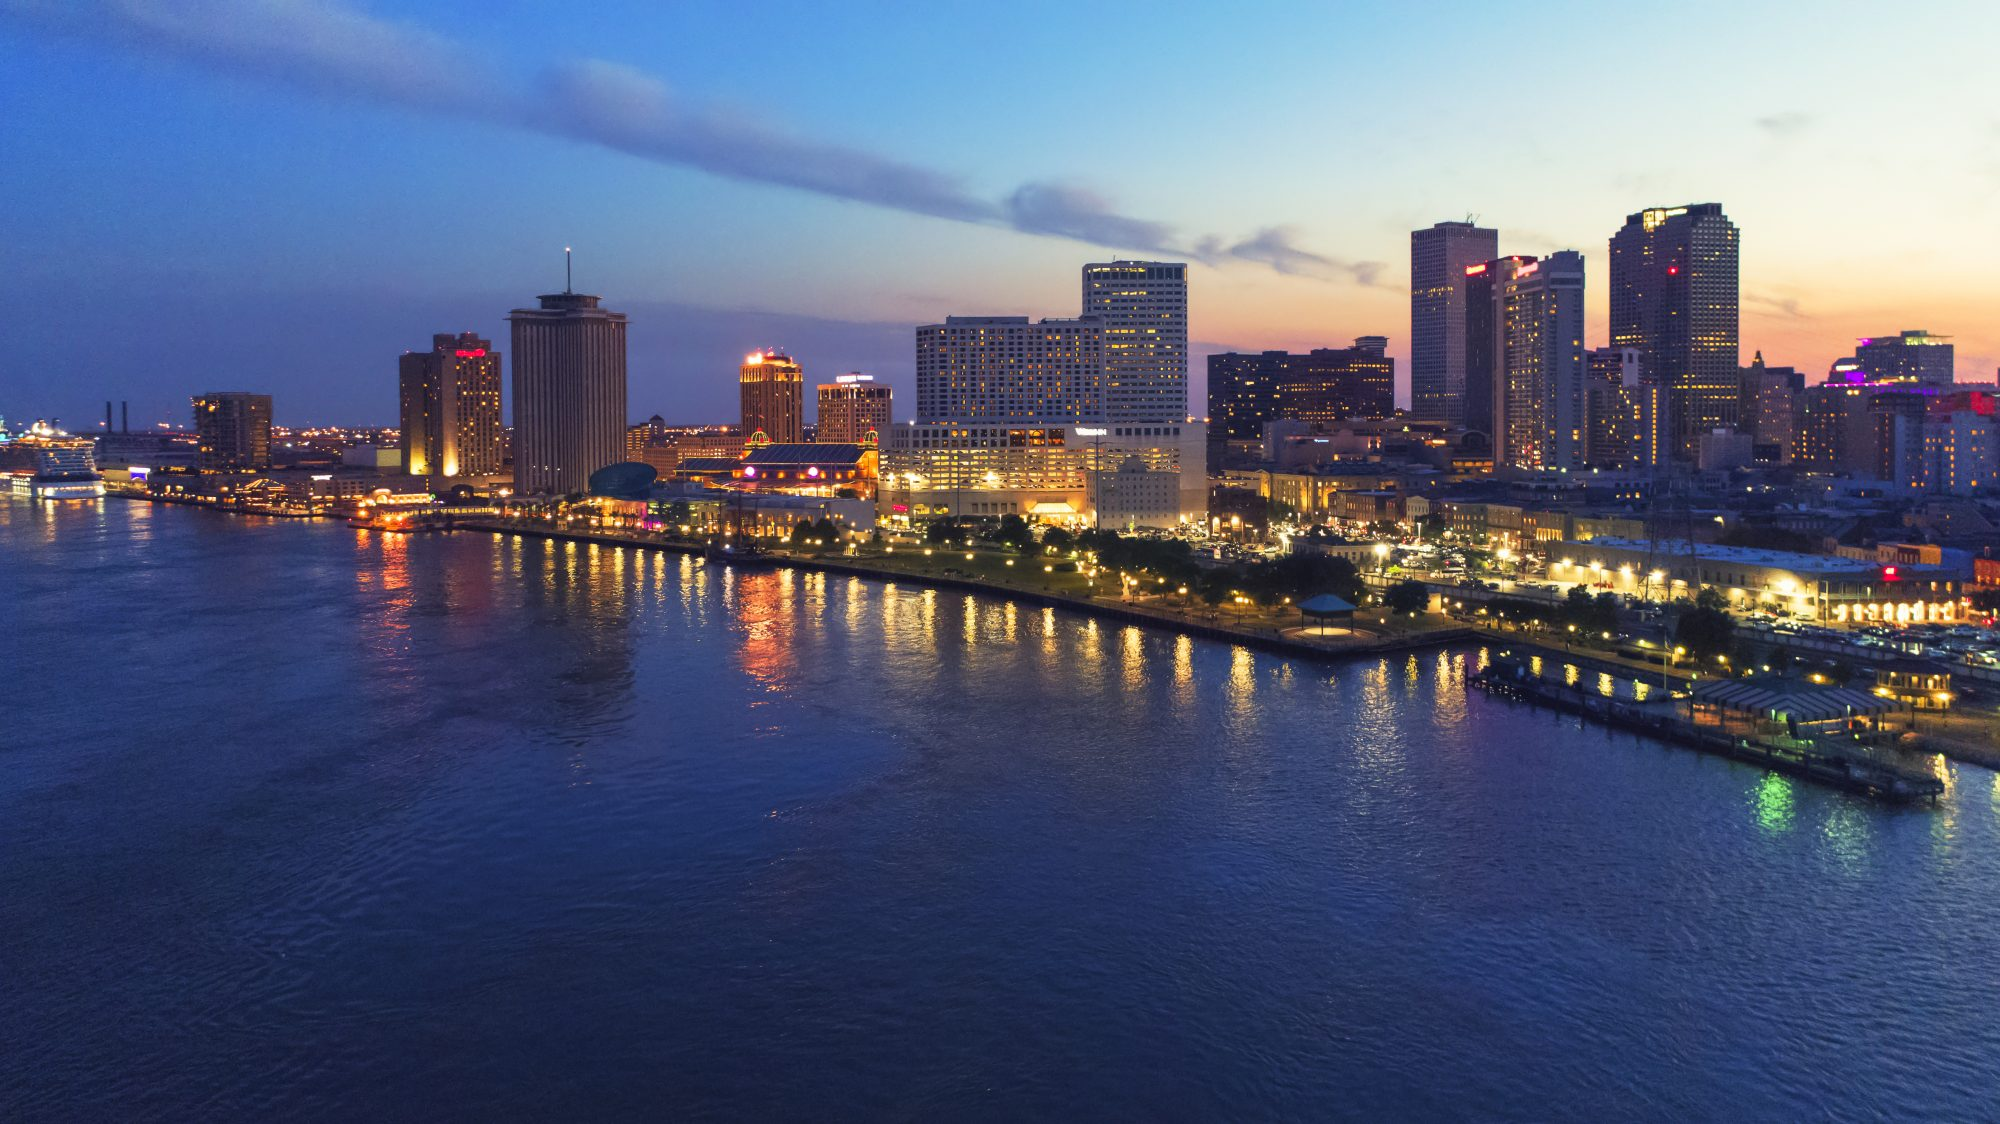 New Orleans Hotel Celebrating 125th Anniversary with a Special Giveaway Worth $15,000